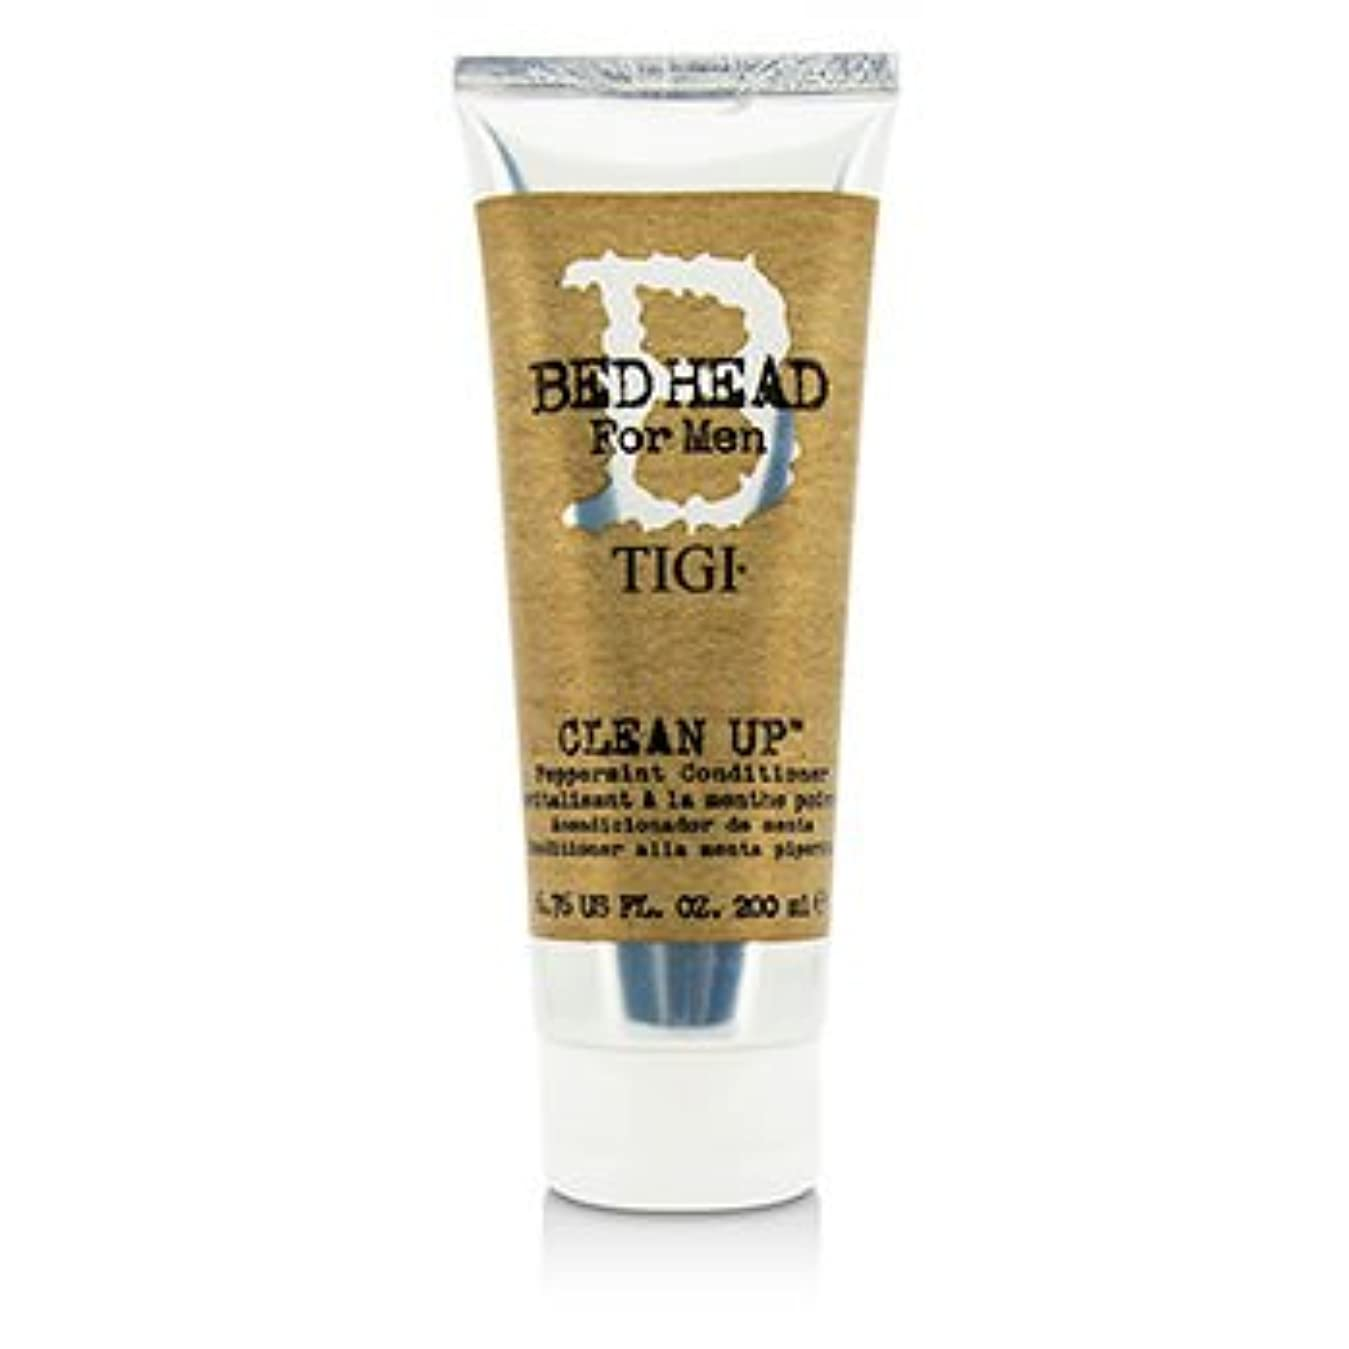 ダーリン説明的田舎者[Tigi] Bed Head B For Men Clean Up Peppermint Conditioner 200ml/6.76oz